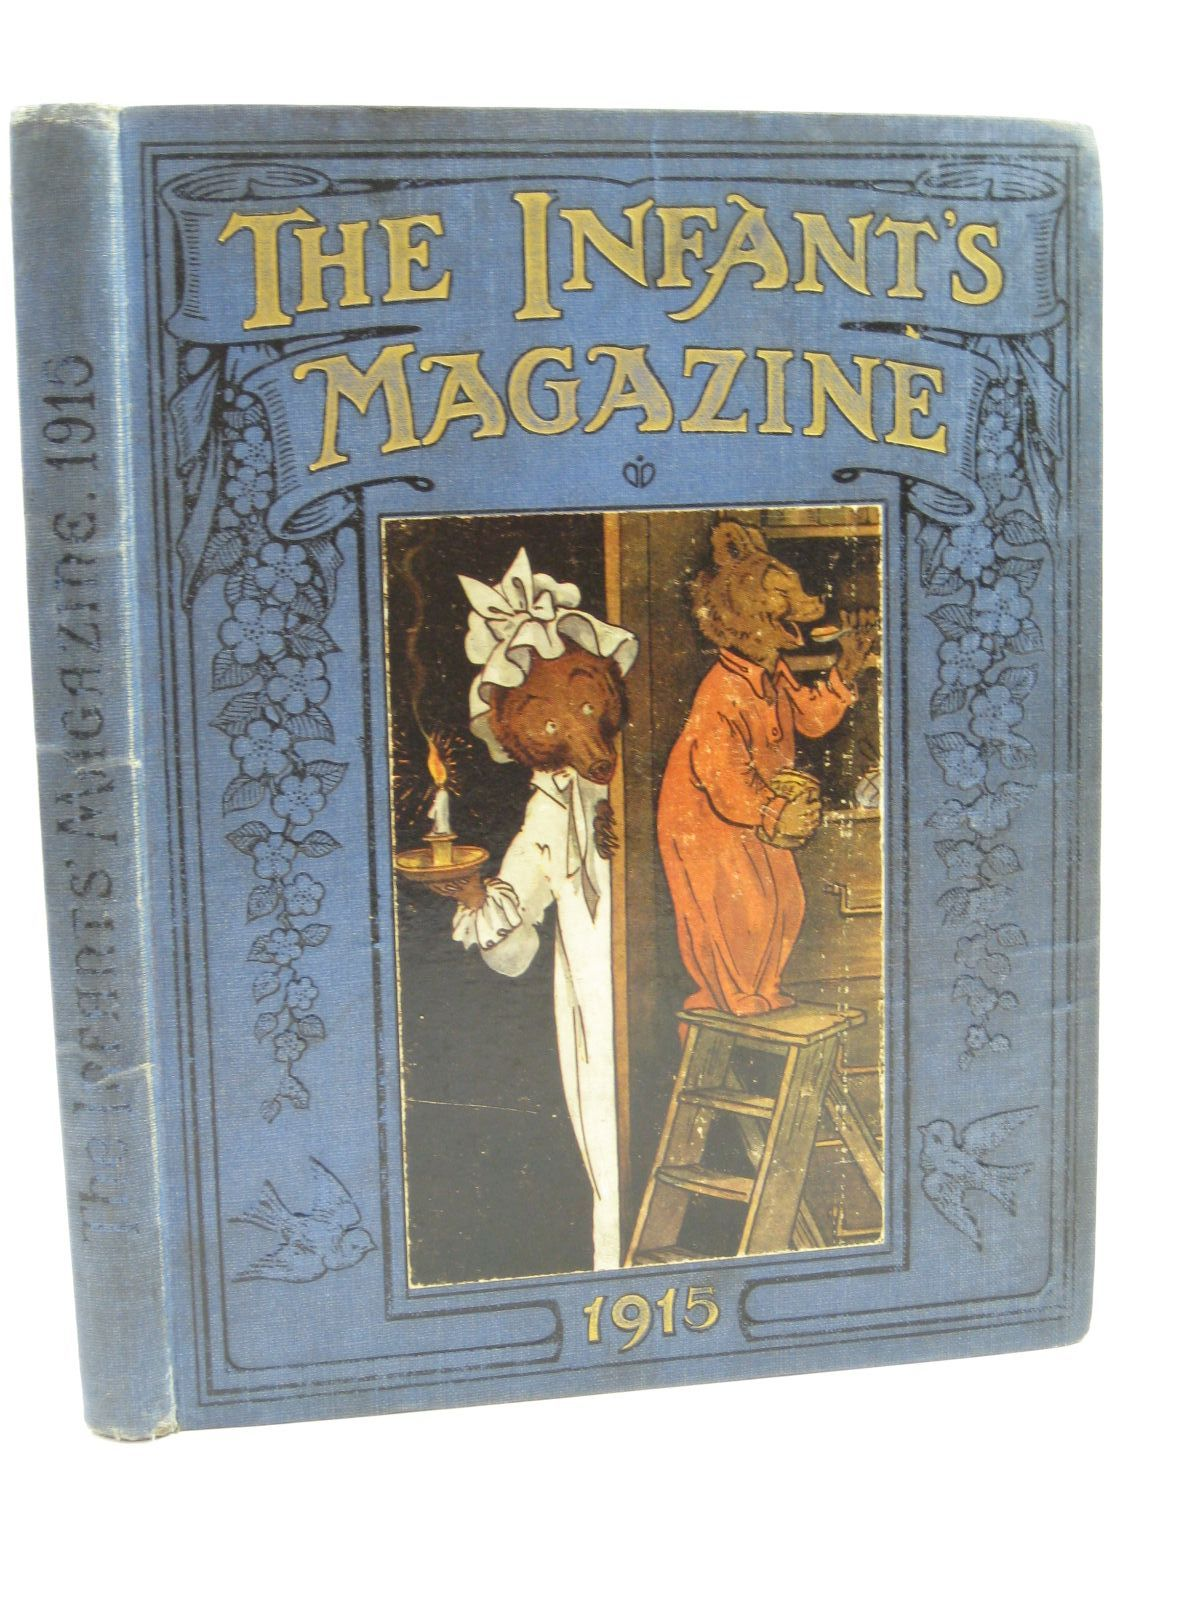 Photo of THE INFANTS' MAGAZINE FOR 1915 49TH VOL written by Lea, John<br />Leigh, Felix<br />et al, illustrated by Bowley, A.L.<br />Wain, Louis<br />Lambert, H.G.C. Marsh<br />Adams, Frank<br />et al., published by S.W. Partridge & Co. Ltd. (STOCK CODE: 1506908)  for sale by Stella & Rose's Books